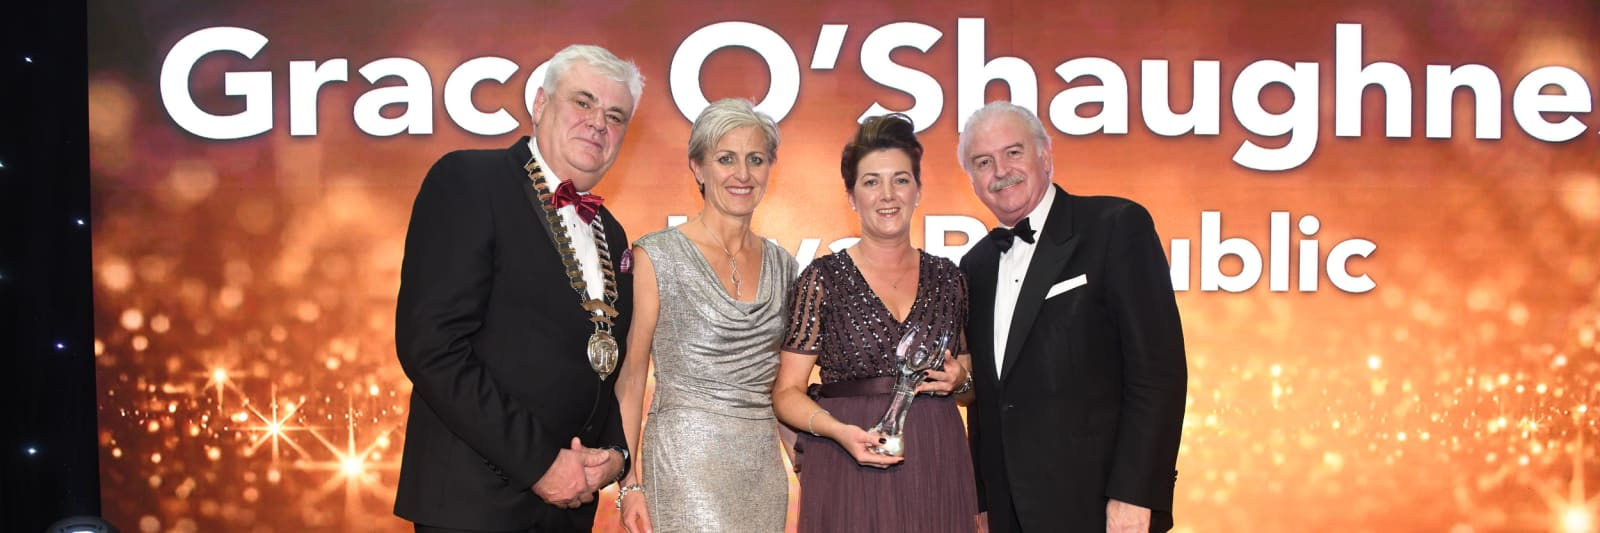 FDC-Business-Person-of-the-Year-2019---Grace-O'Shaughnessy.JPG-w1600.jpg